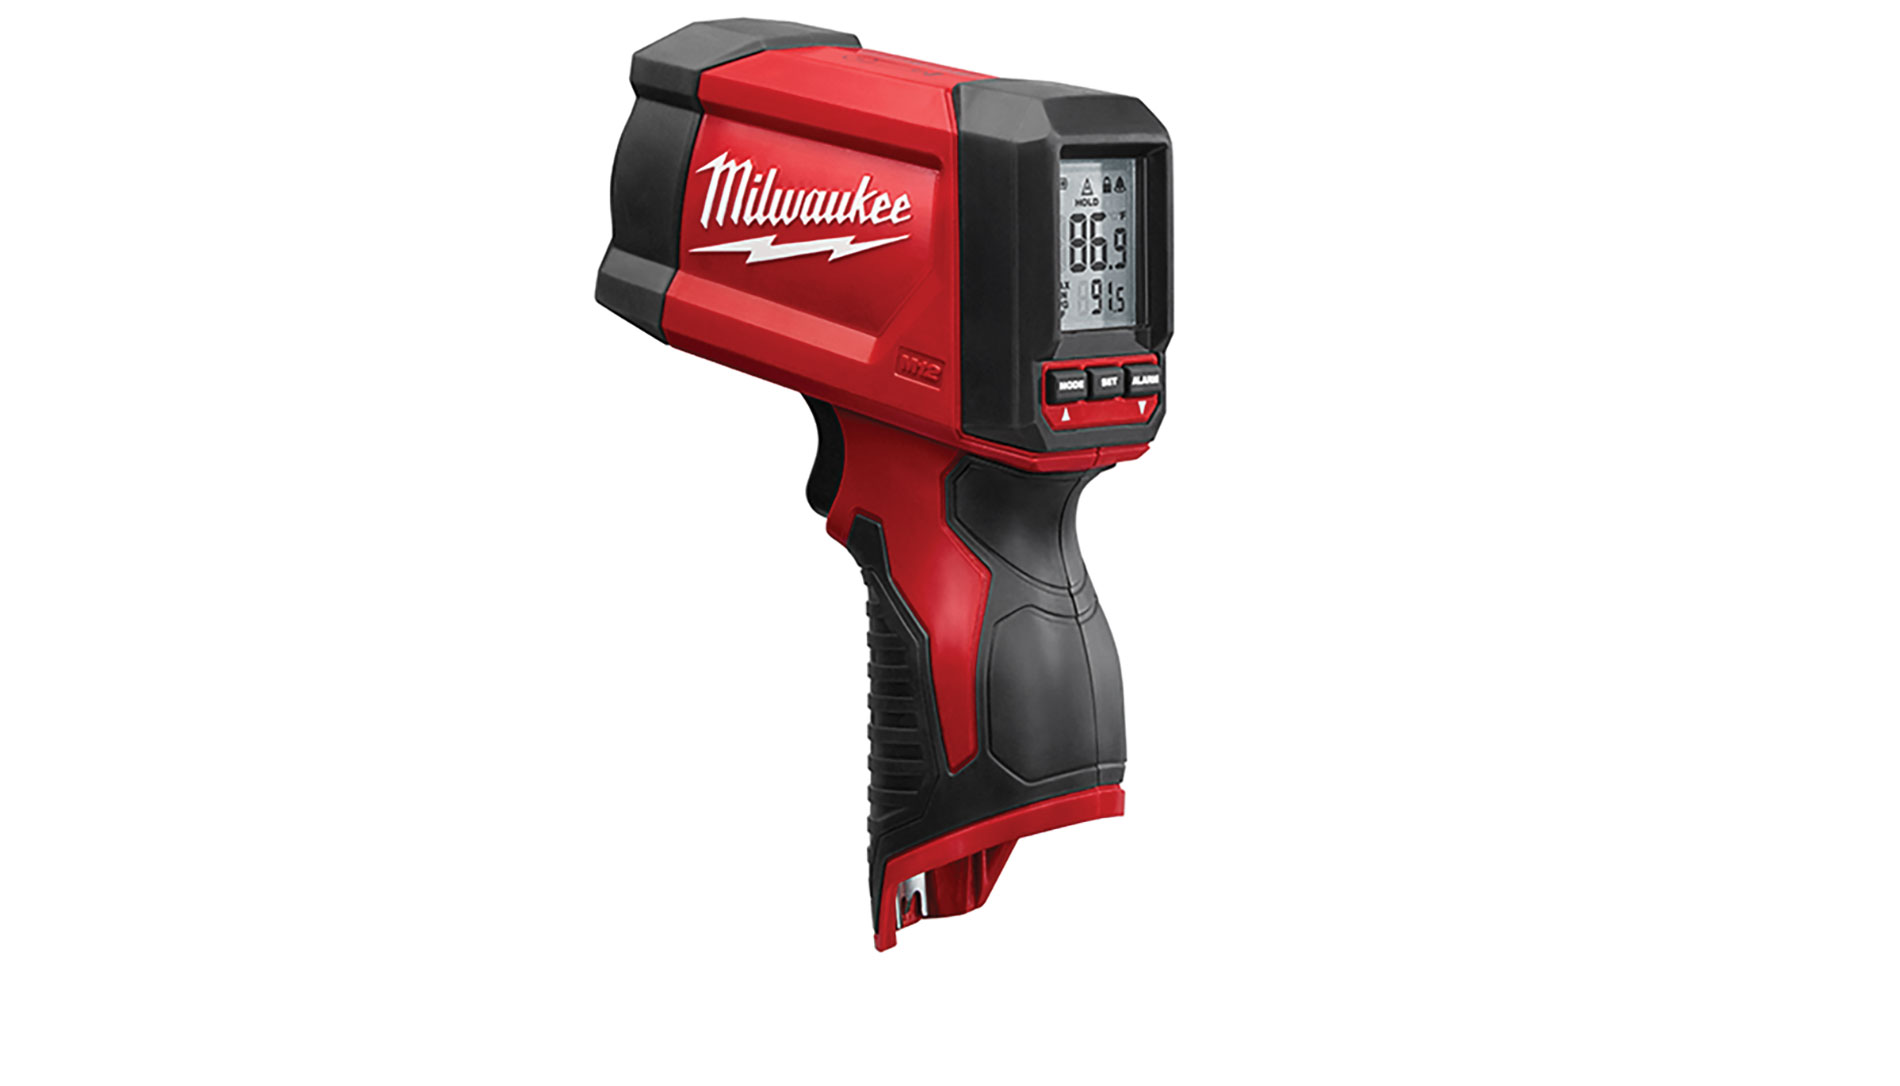 Milwaukee 12:1 Infrared Temp-Gun www.milwaukeetool.com